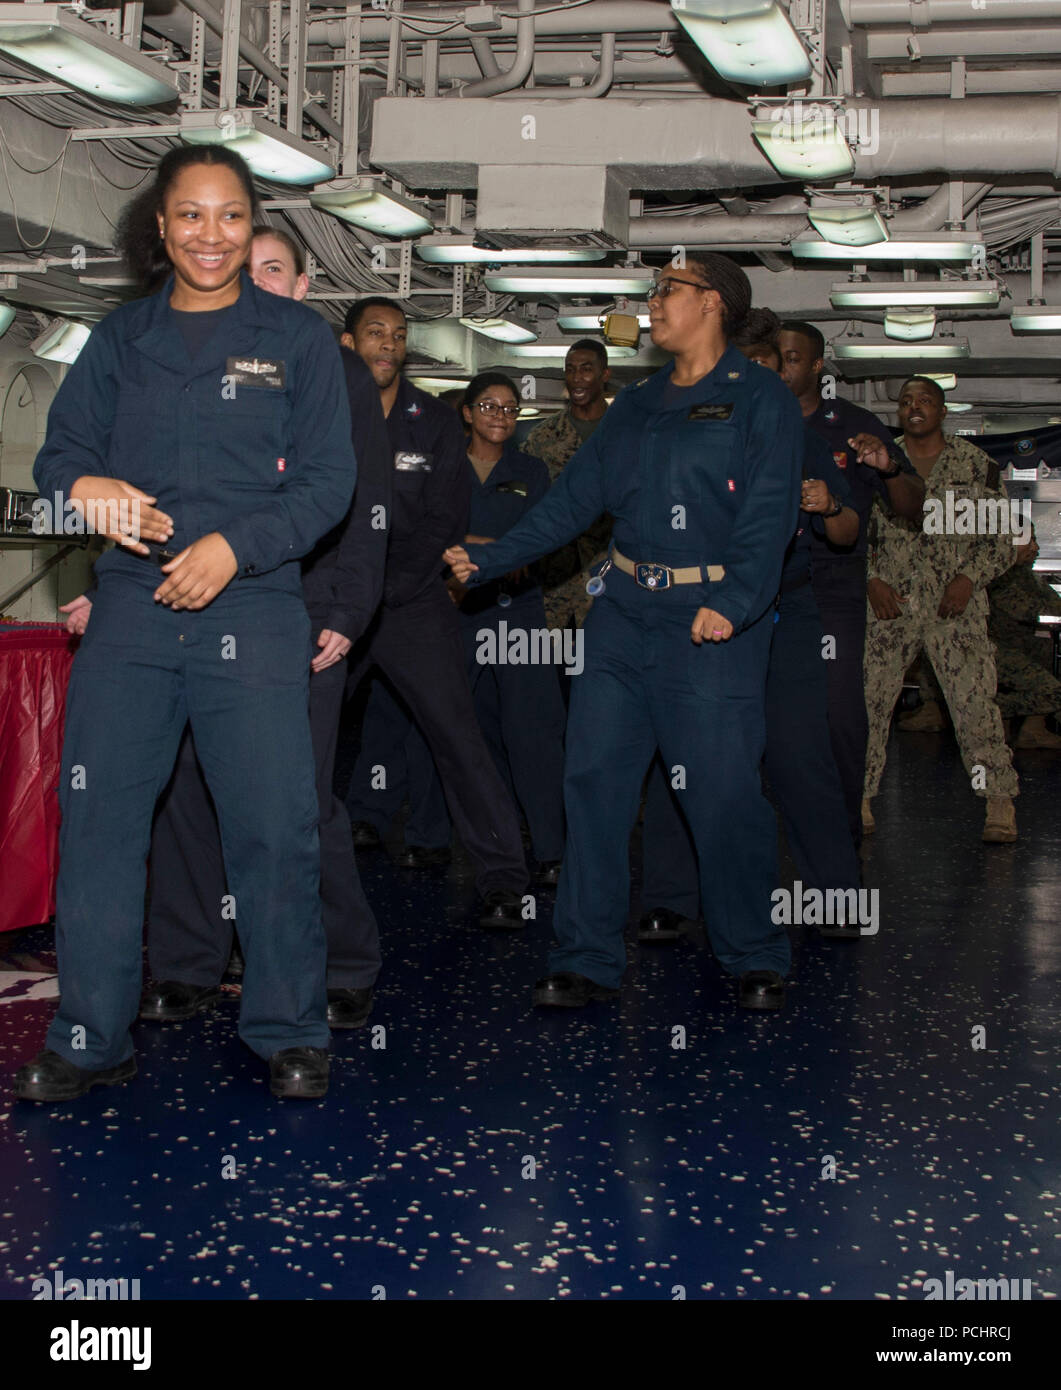 180728-N-ZK016-0046  ATLANTIC OCEAN (July 27, 2018) Sailors and Marines dance during an ice cream and cookie social on the messdecks aboard the Wasp-class amphibious assault ship USS Iwo Jima (LHD 7), July 27, 2018. Iwo Jima, homeported in Mayport, Florida, is conducting naval operations in the U.S. 6th Fleet area of operations in support of U.S. national security interests in Europe and Africa. (U.S. Navy photo by Mass Communication Specialist 3rd Class Joe J. Cardona Gonzalez/Released) Stock Photo